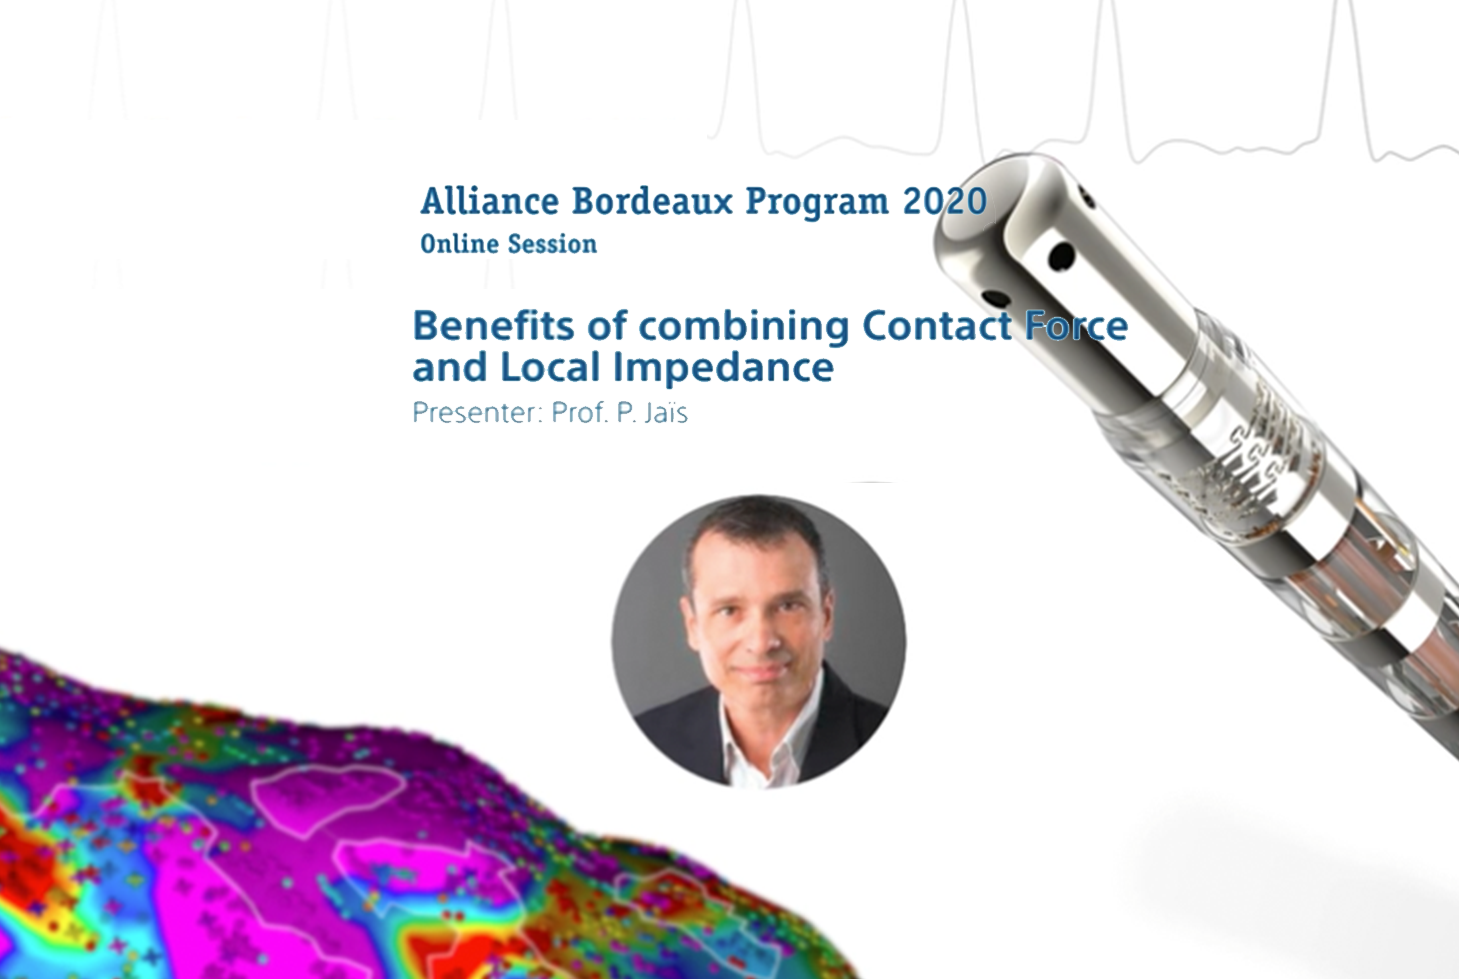 The Benefits of Combining Contact Force and Local Impedance